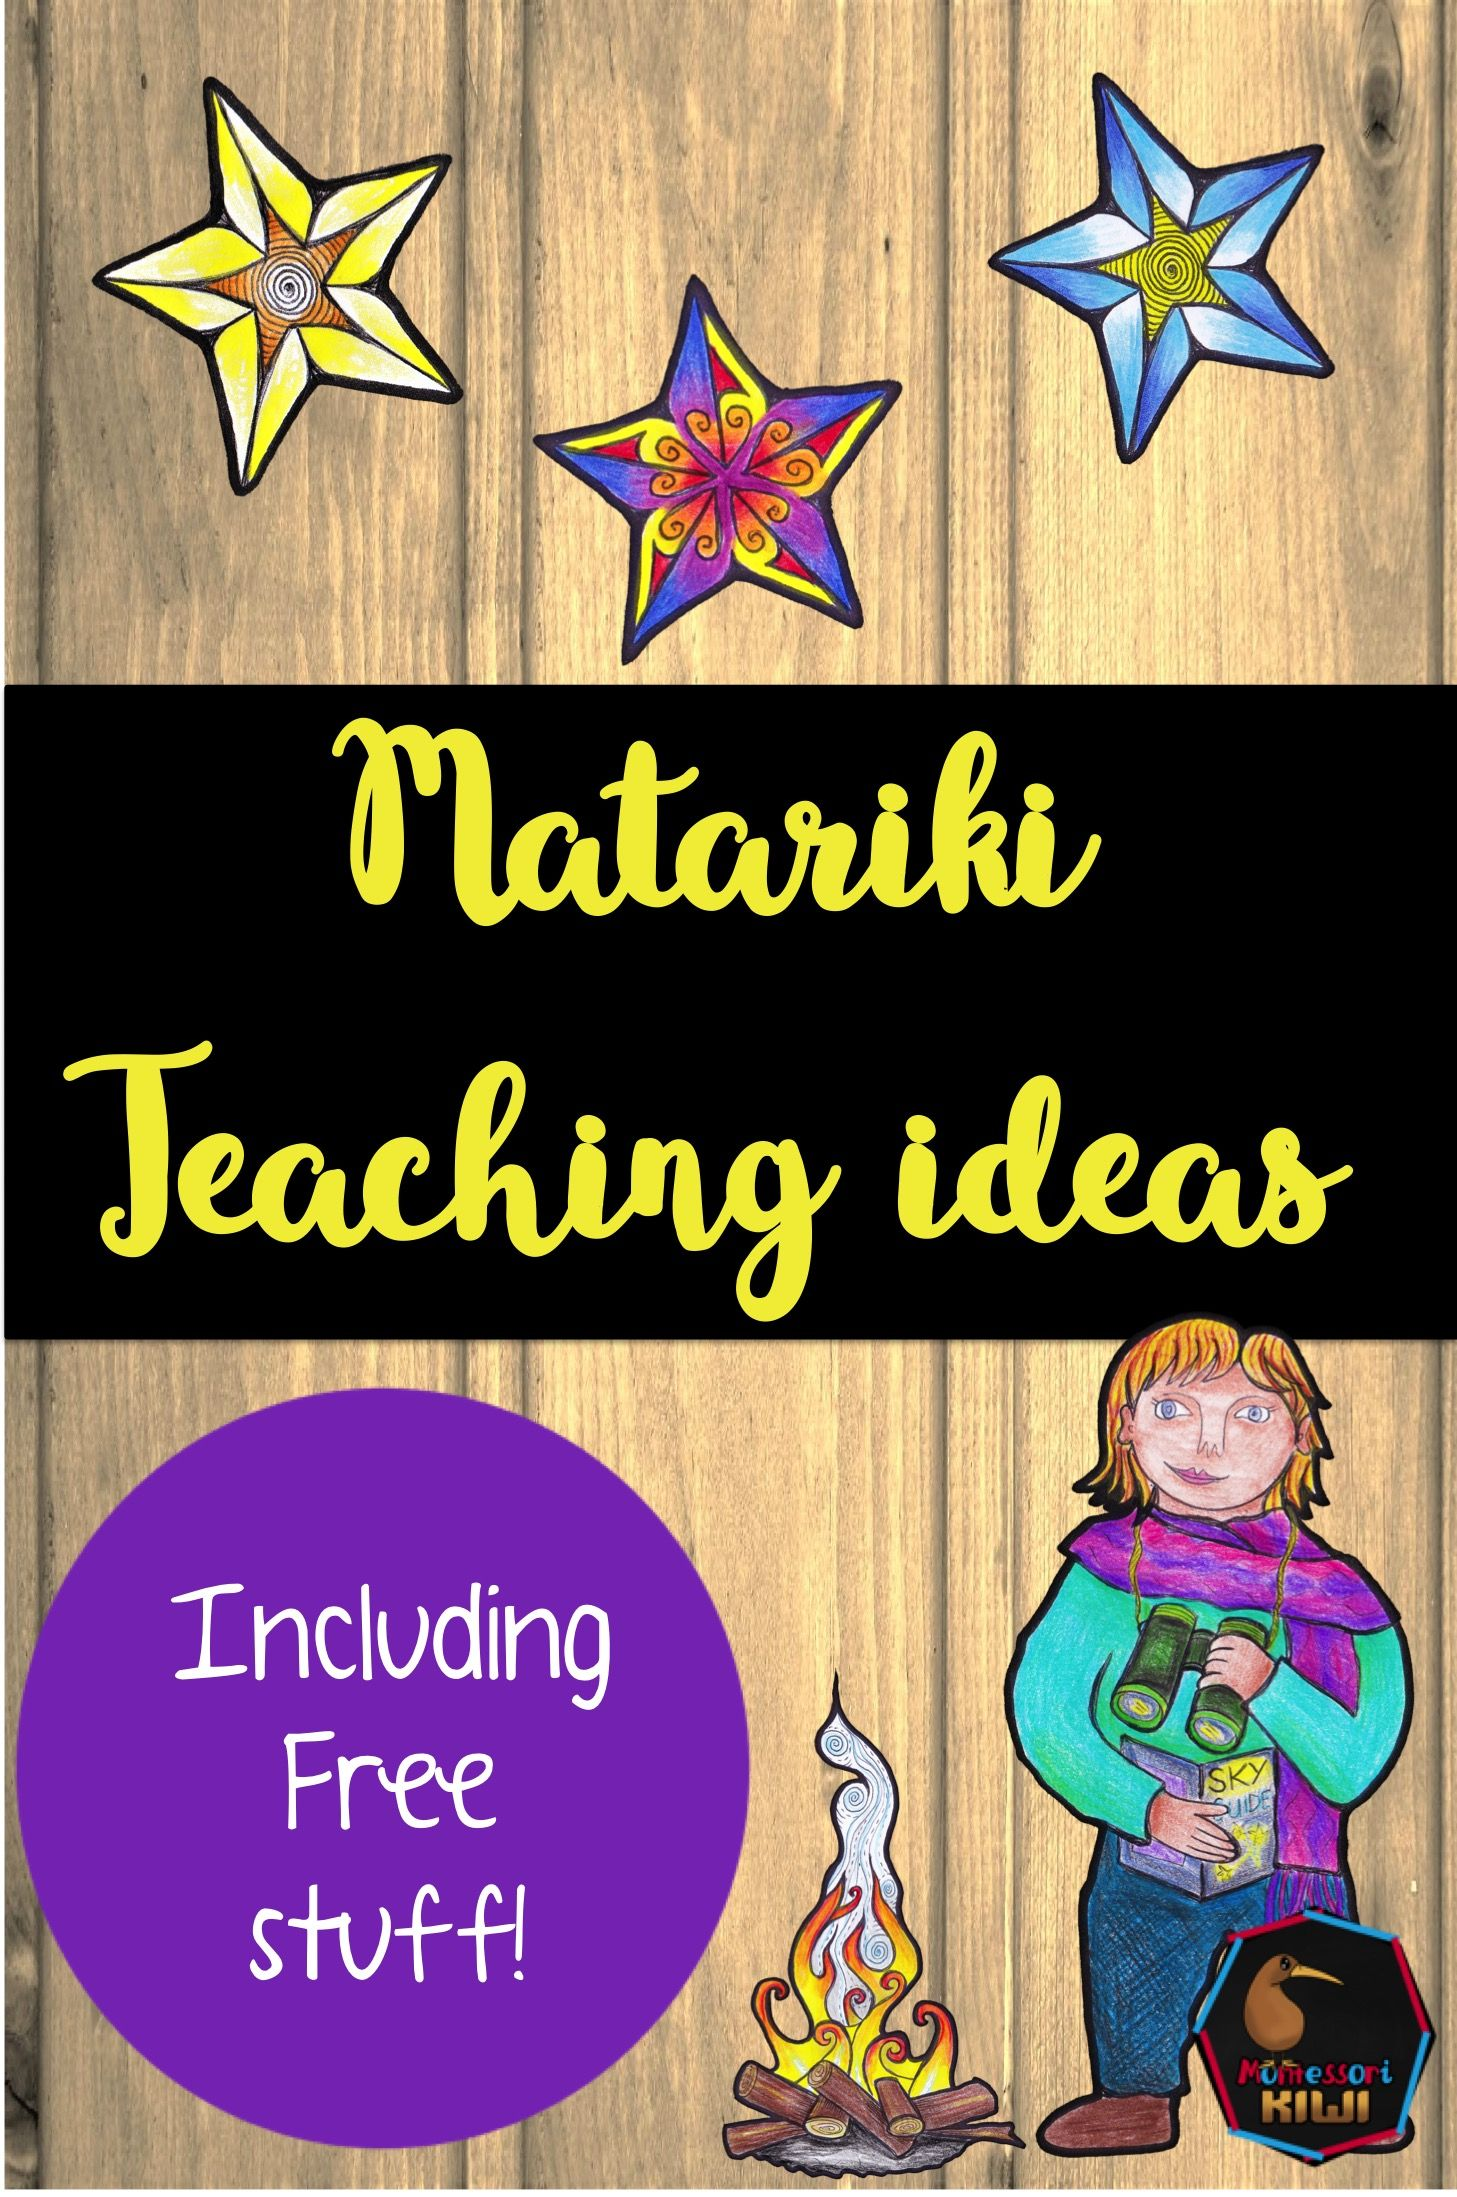 Page Containing Teaching Ideas For The Matariki Festival